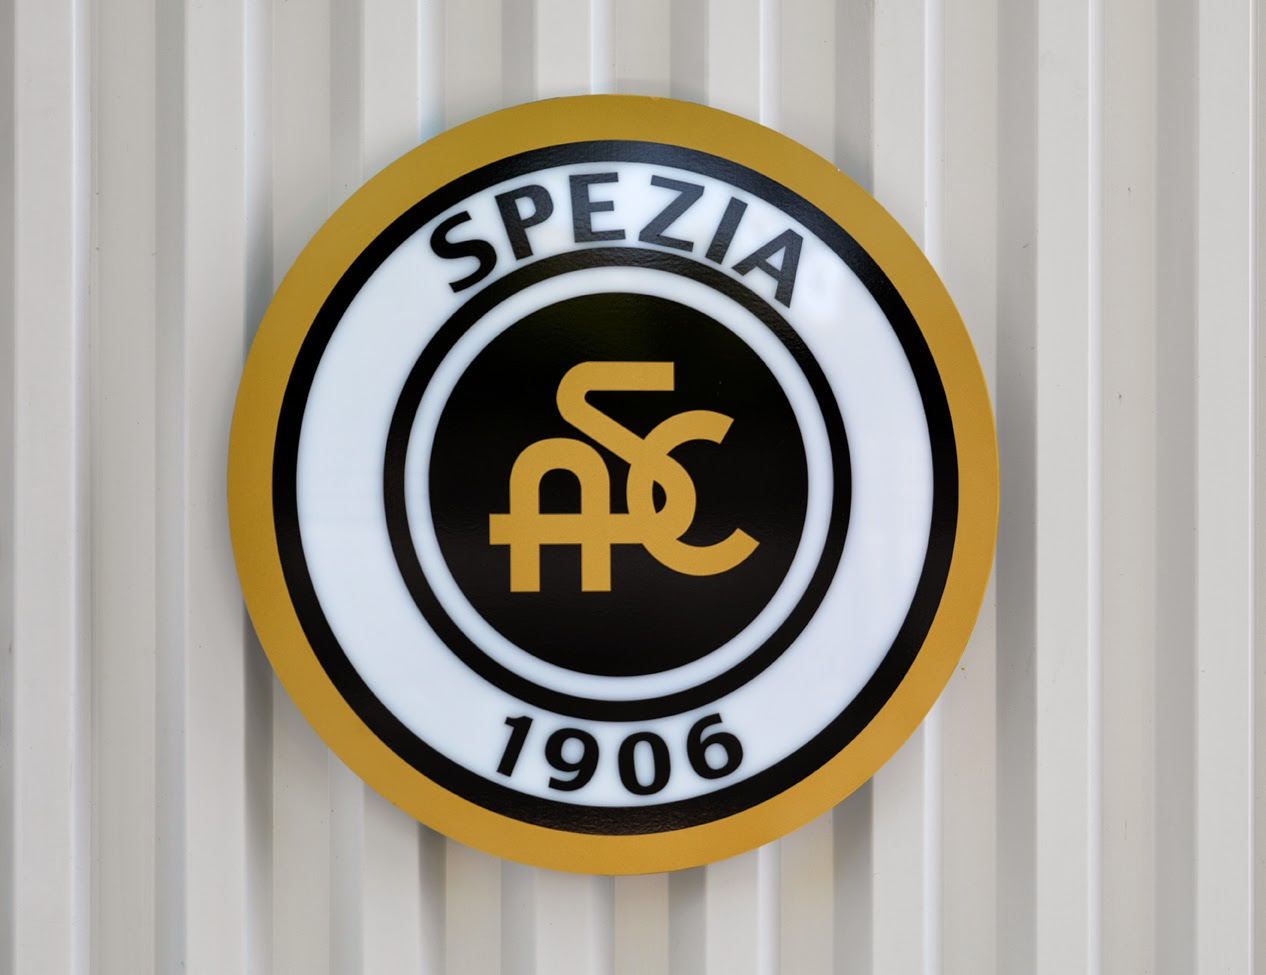 spezia calcio, spezia football club, soccer trials, football trial, youth trials, football career, provini calcio, raduno giovani calciatori,